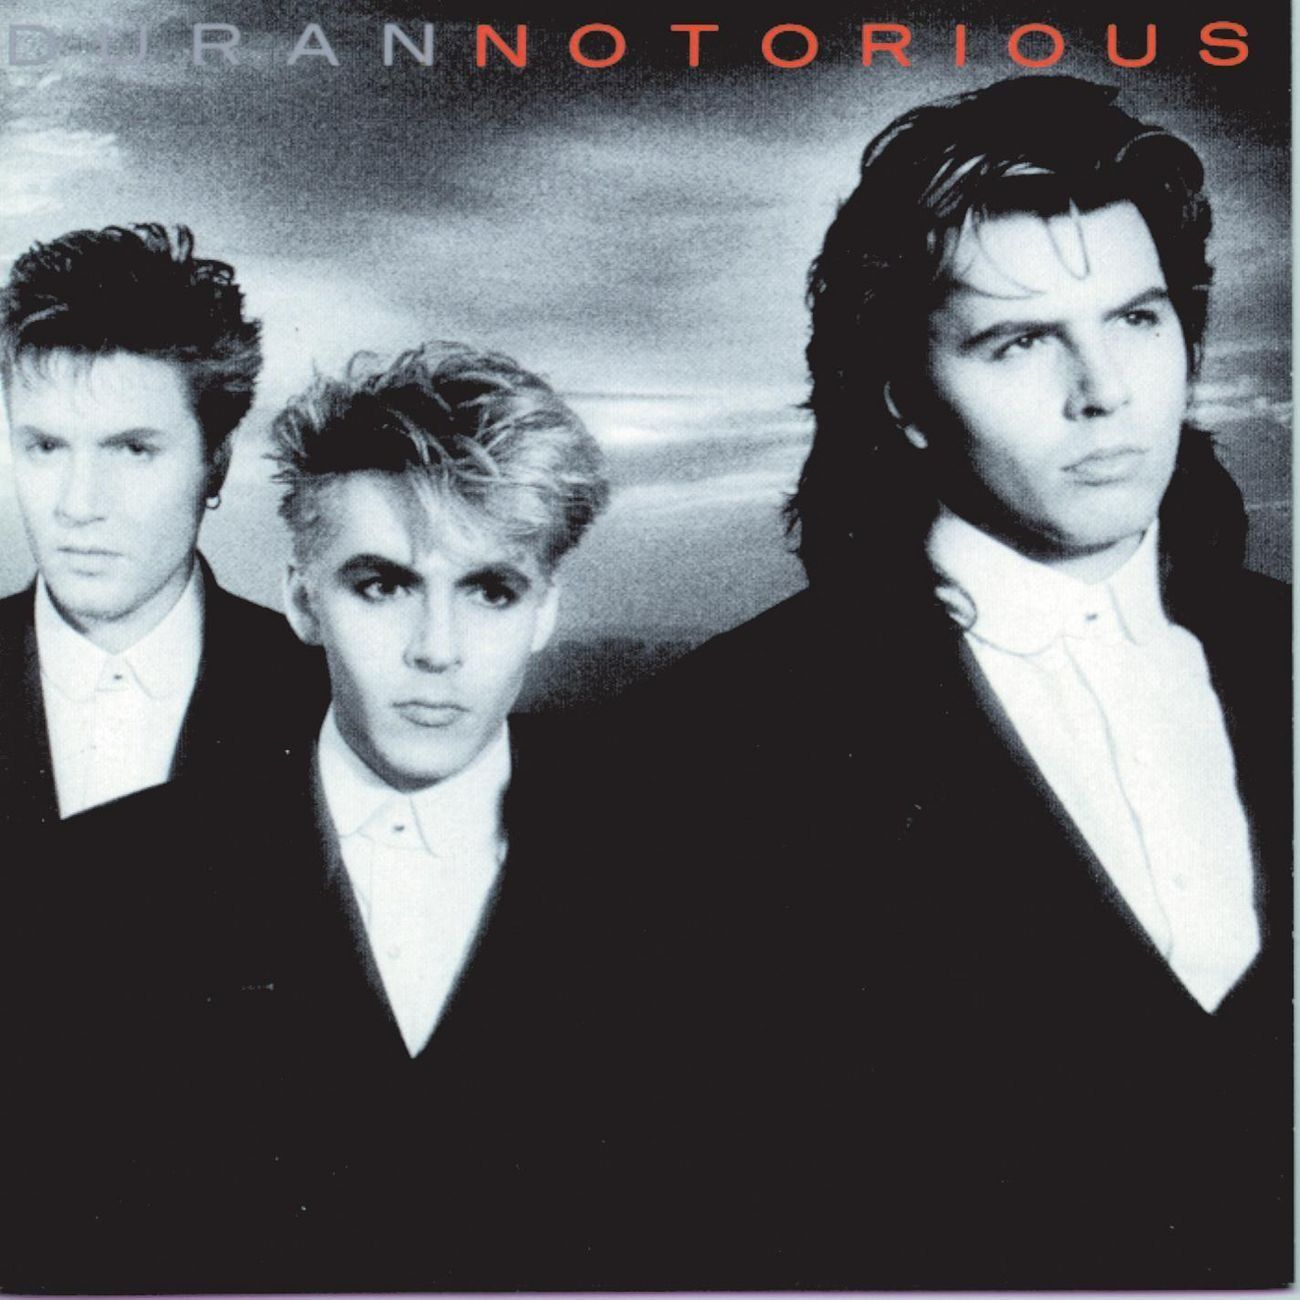 Duran Duran - Notorious | Let there be MUSIC ! | Pinterest | Musik ...